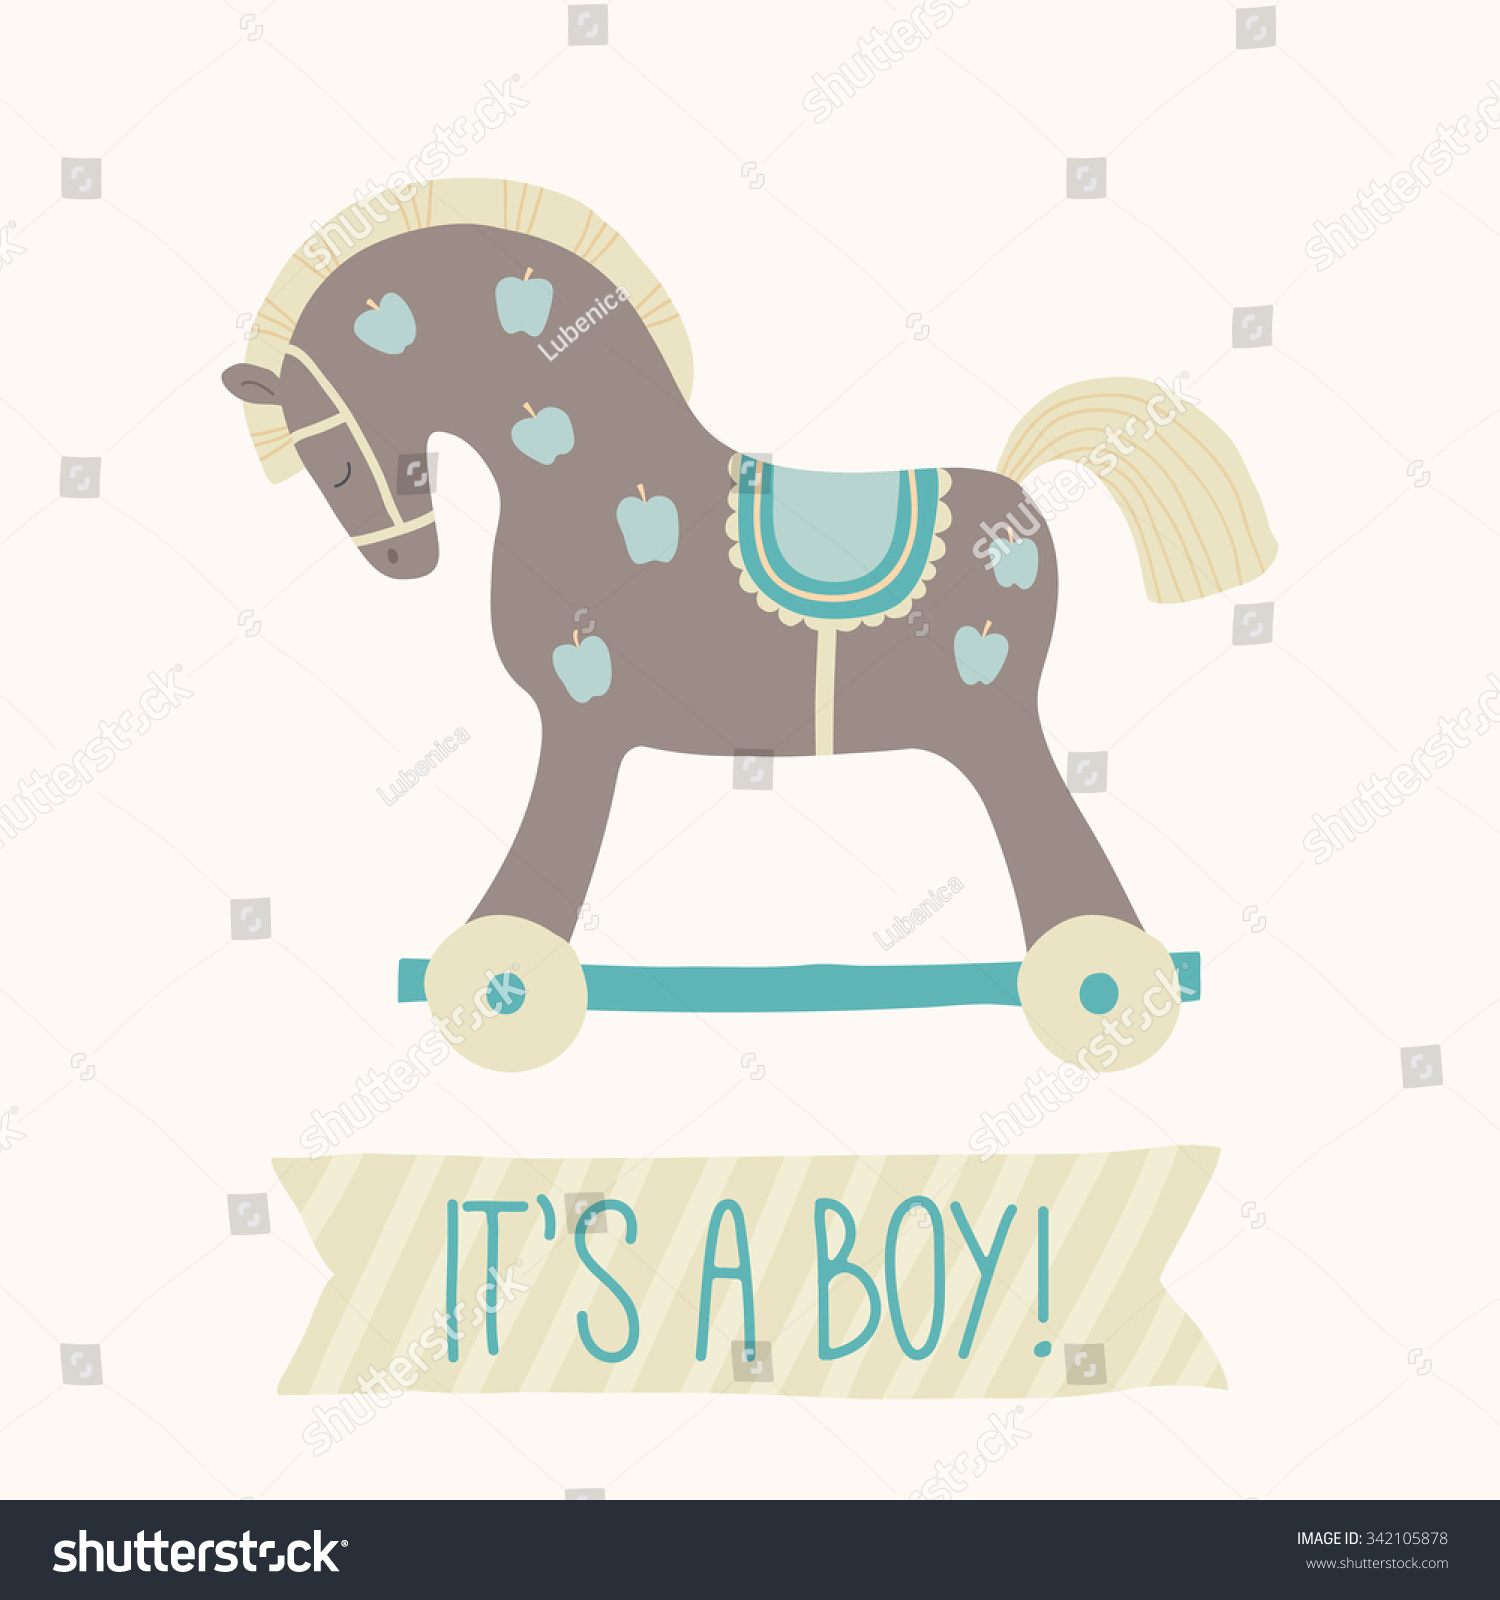 Baby shower invitation its boy cute stock vector 342105878 baby shower invitation its a boy cute toy horse with wheels kids filmwisefo